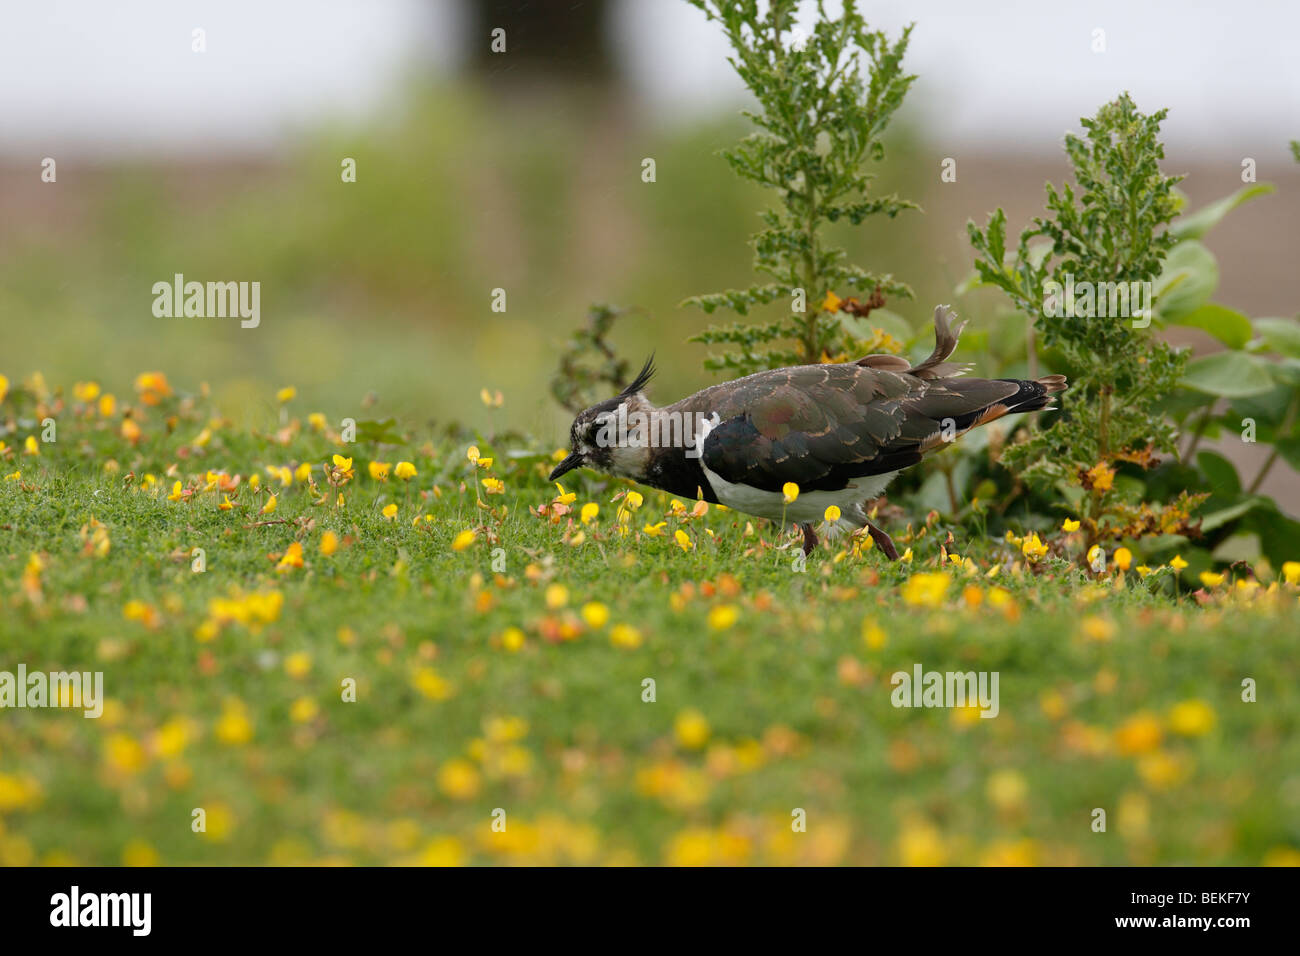 Lapwing (Vanellus vanellus) hunting amongst buttercups - Stock Image